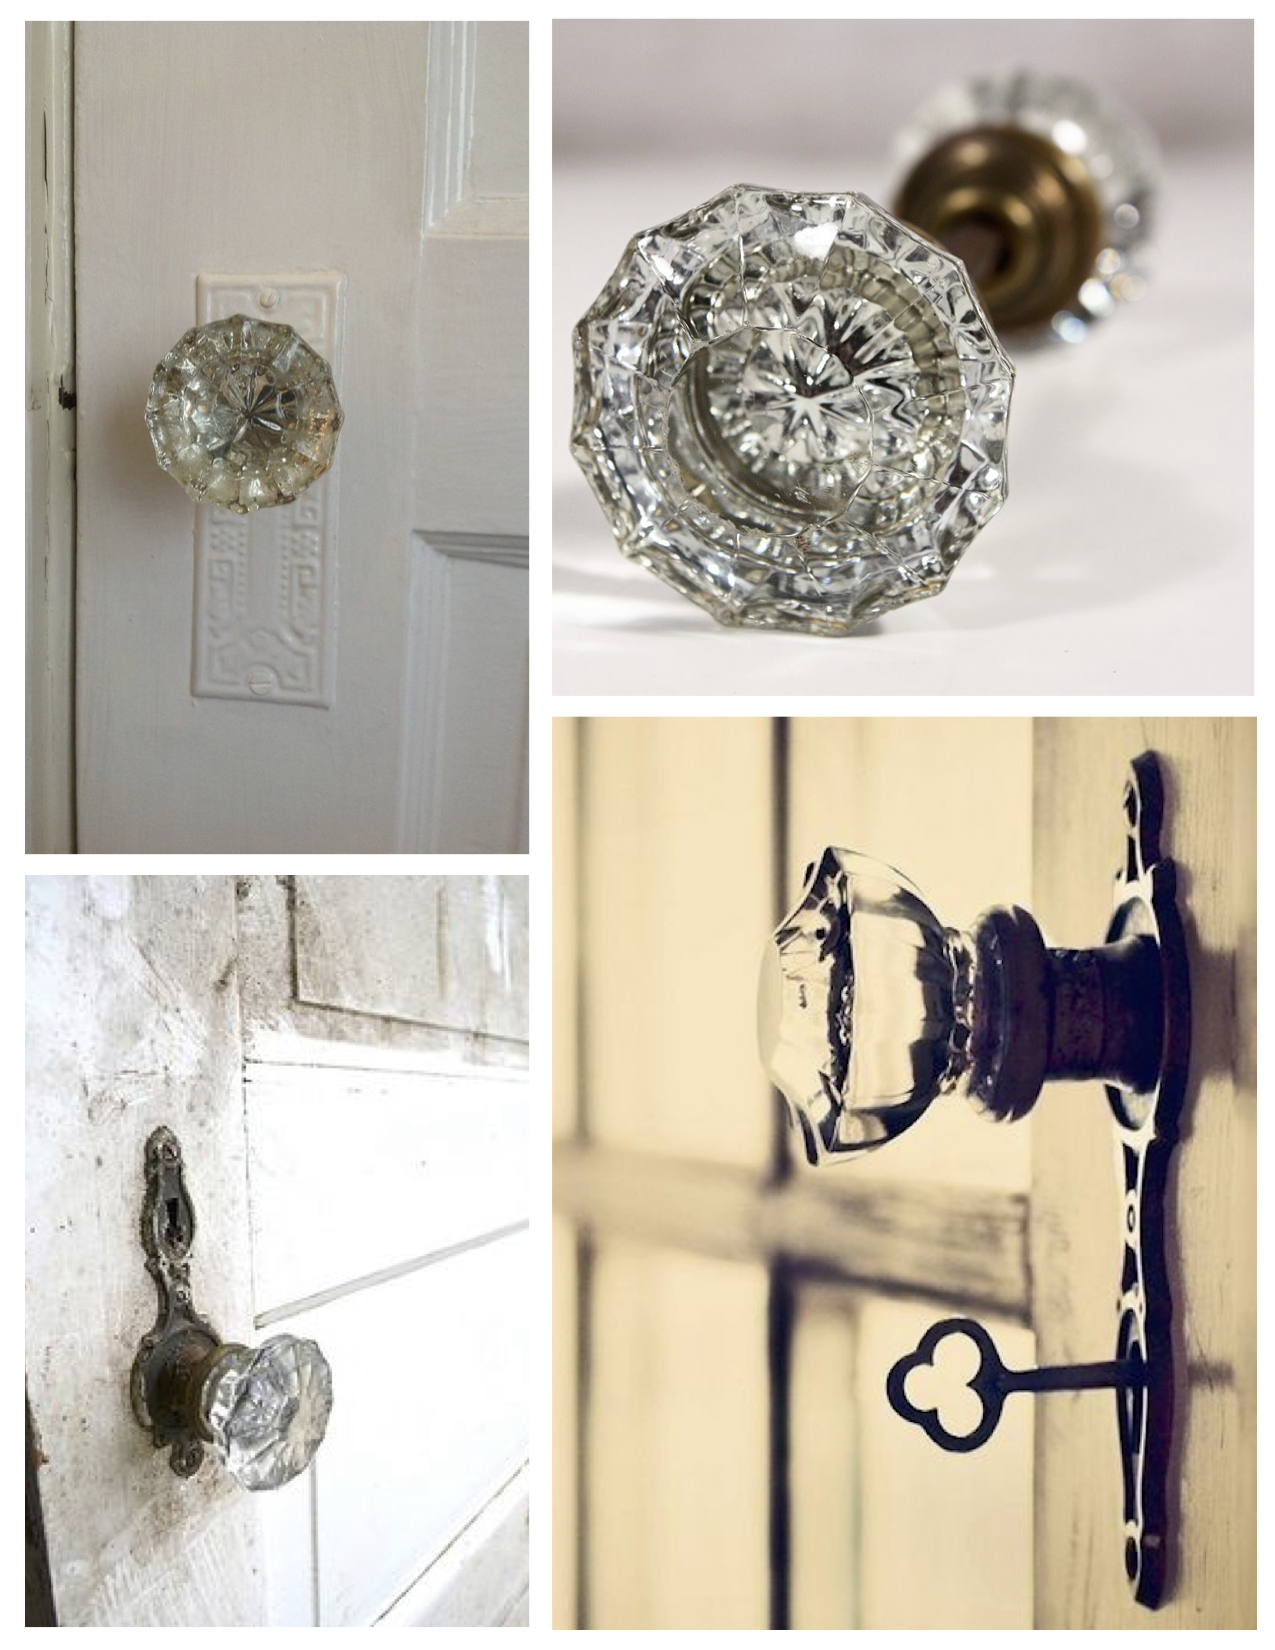 vintage for modern album glass toronto photo antique door losro com sale transitional knobs doors images old d handles uk